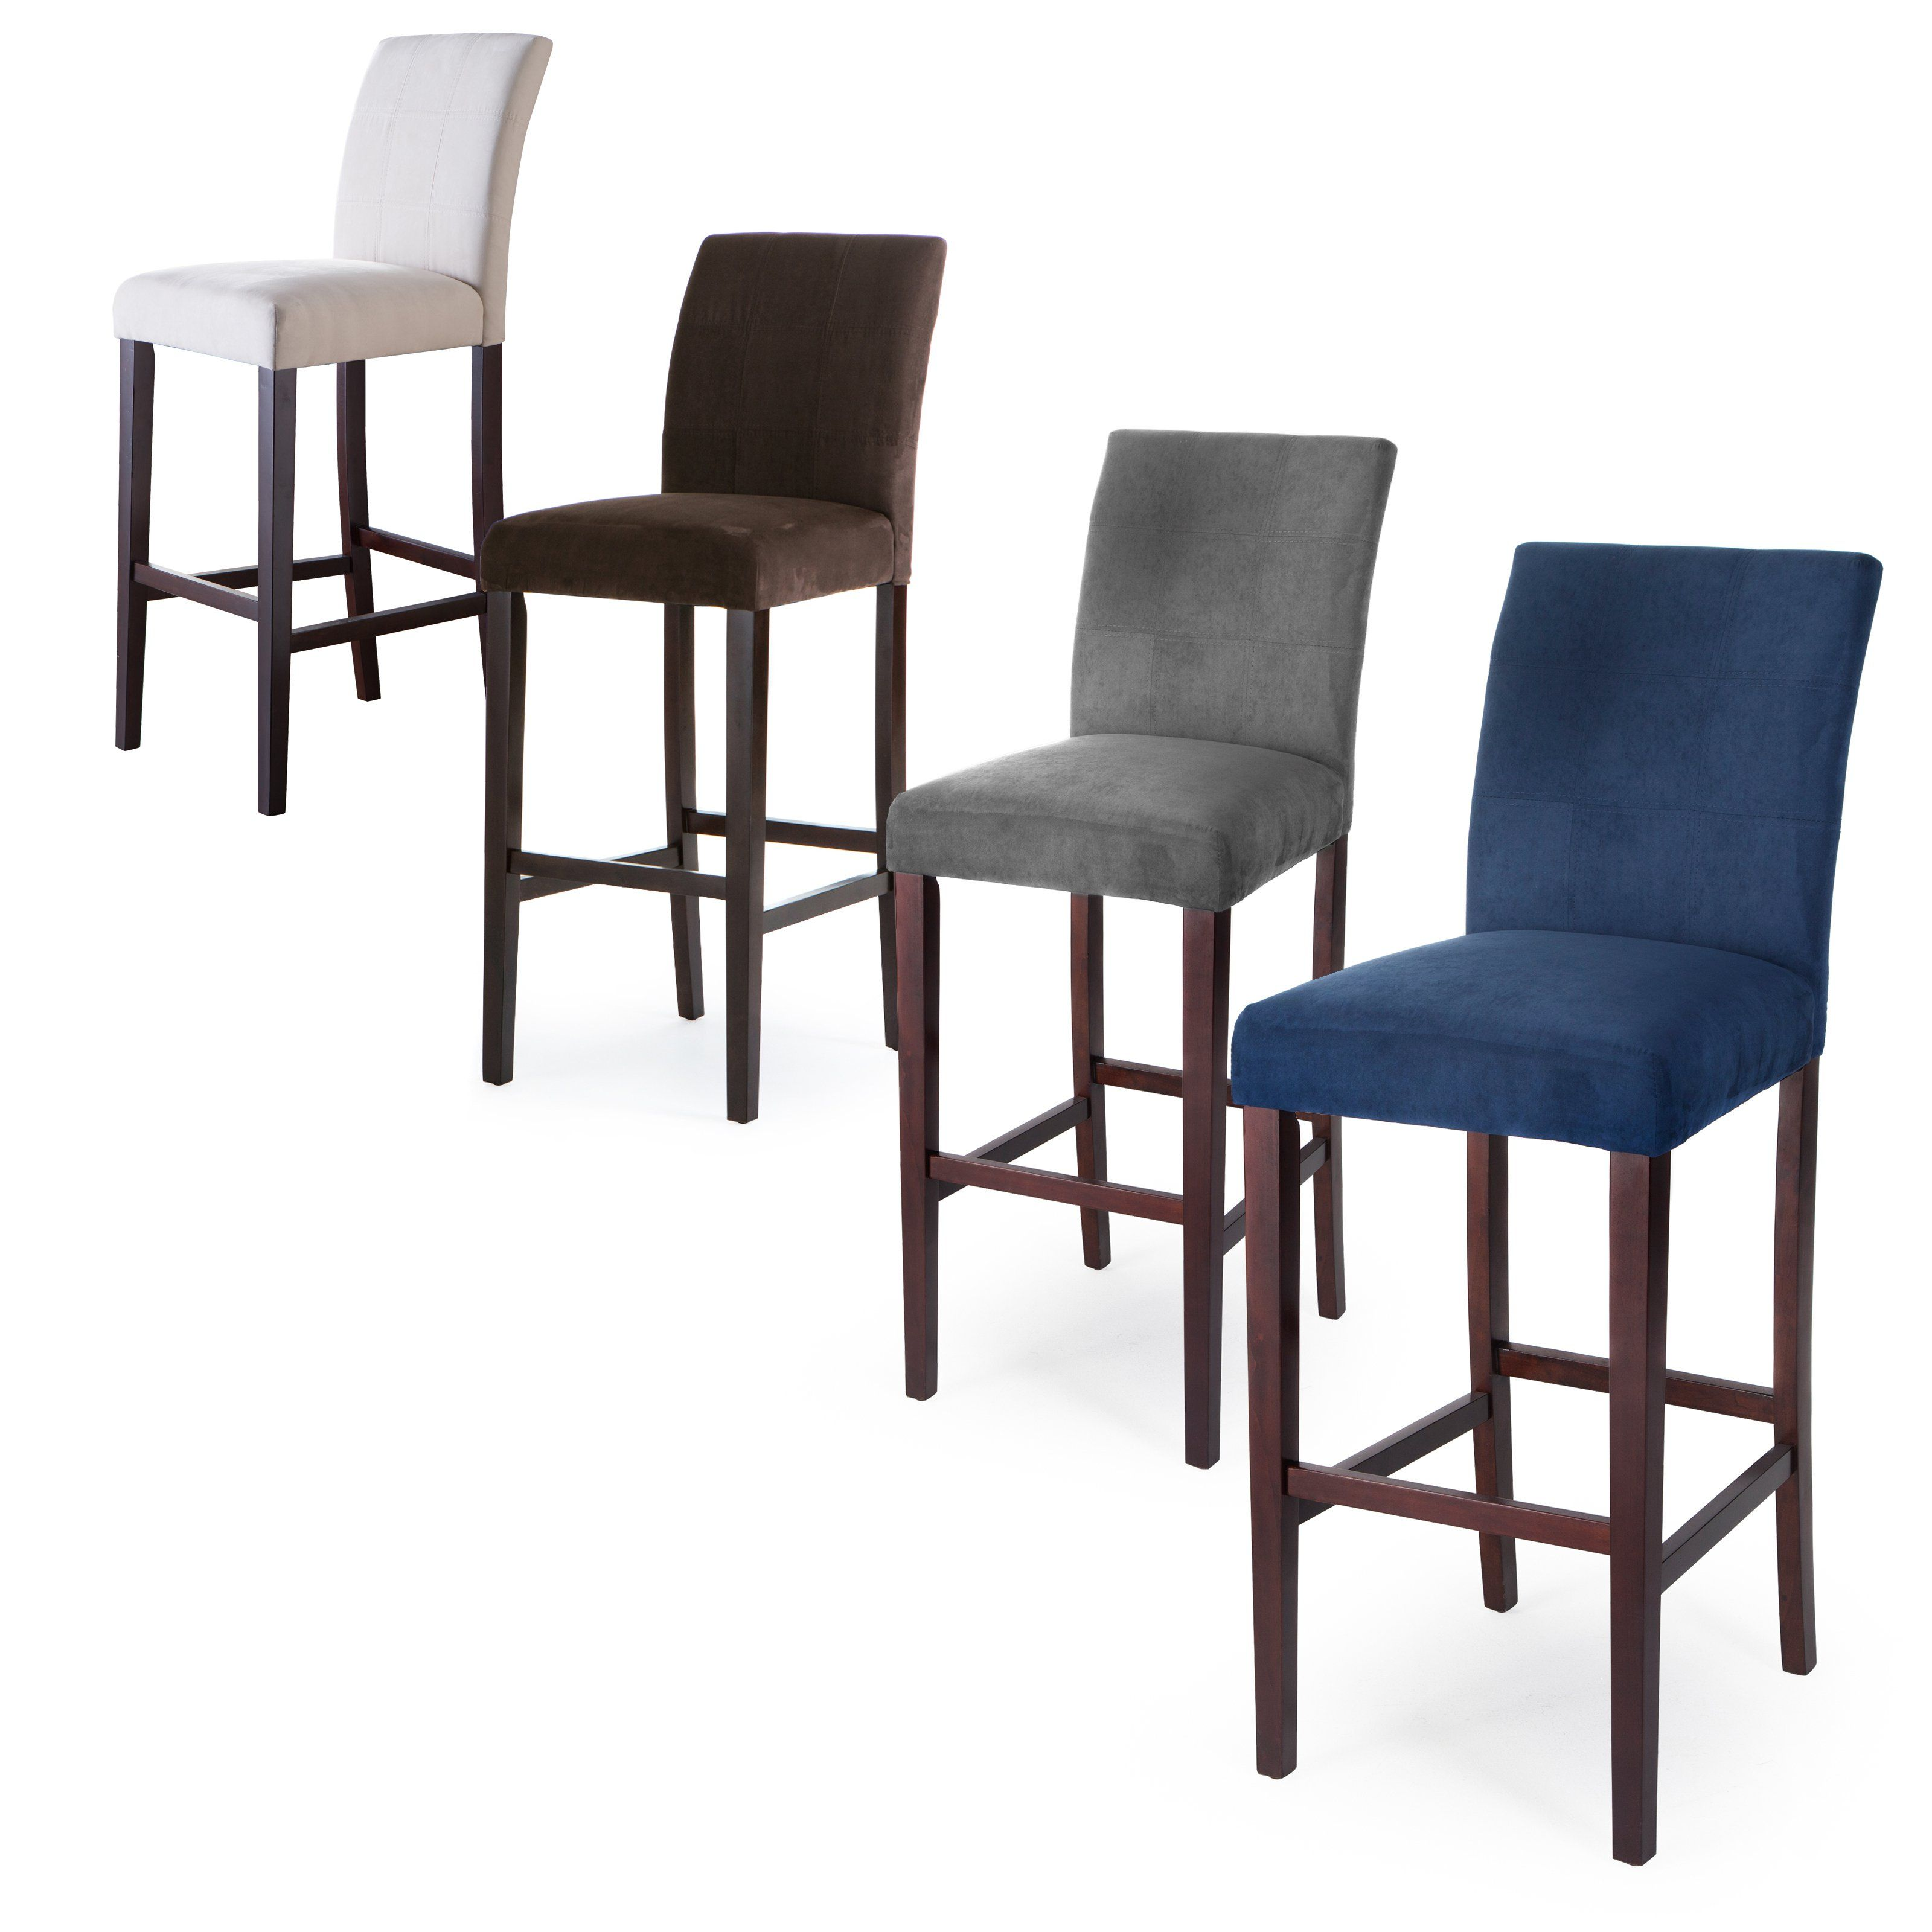 Palazzo 34 inch extra tall bar stool set of 2 just right for your